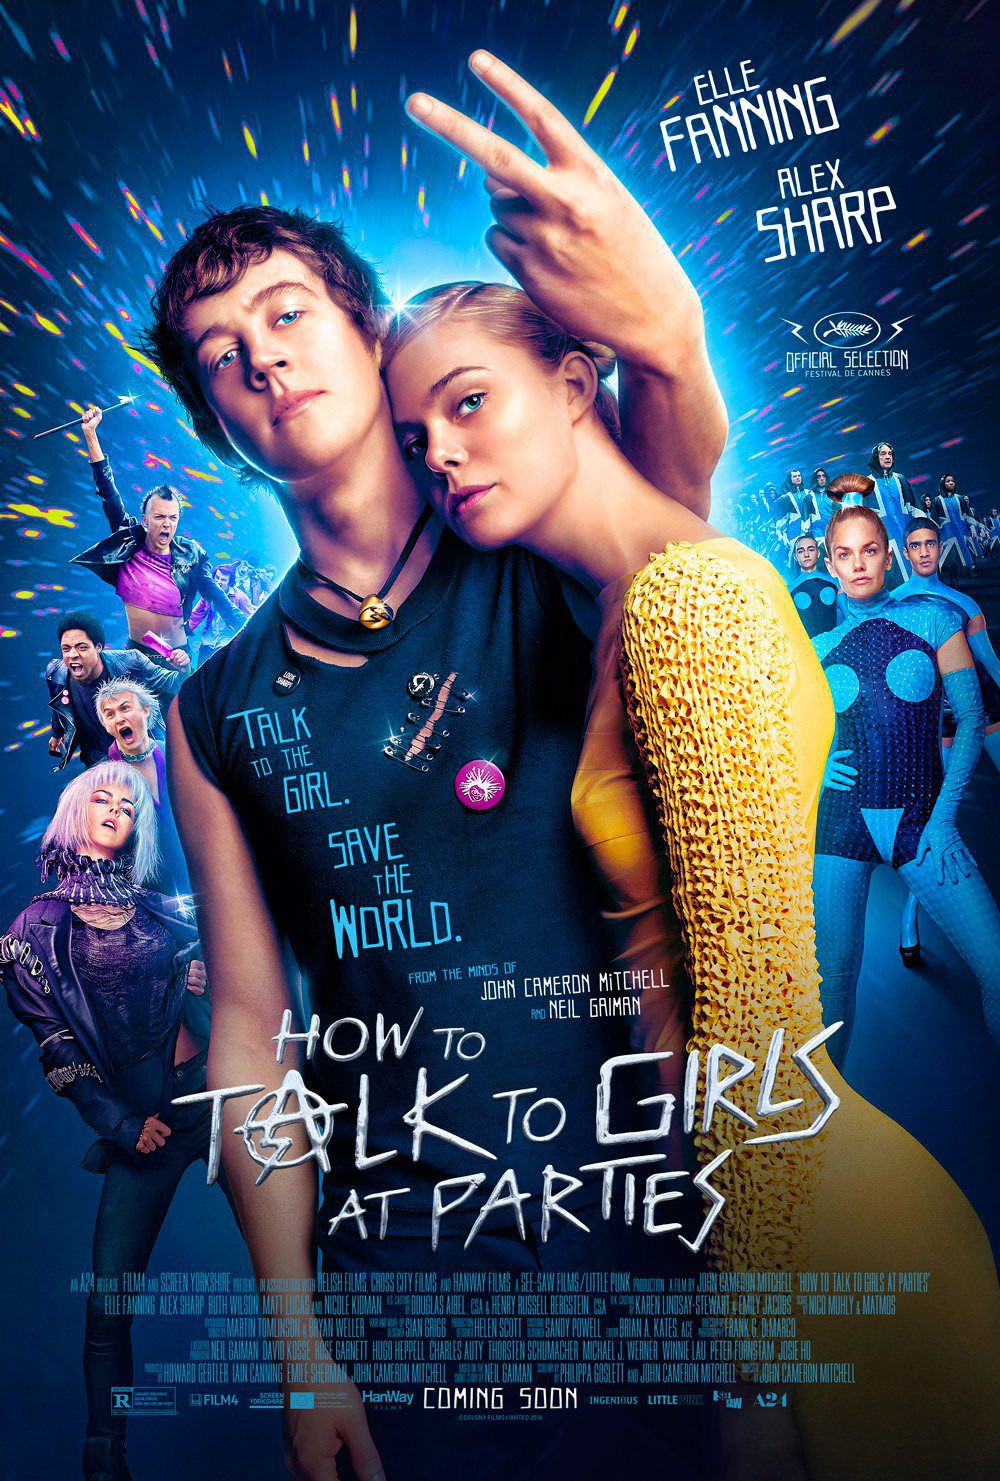 How to Talk to Girls at Parties - Come parlare alle Ragazze alle Feste -  talk to the girl, save the World - Cast: Elle Fanning, Nicole Kidman, Ruth Wilson, Matt Lucas - film poster